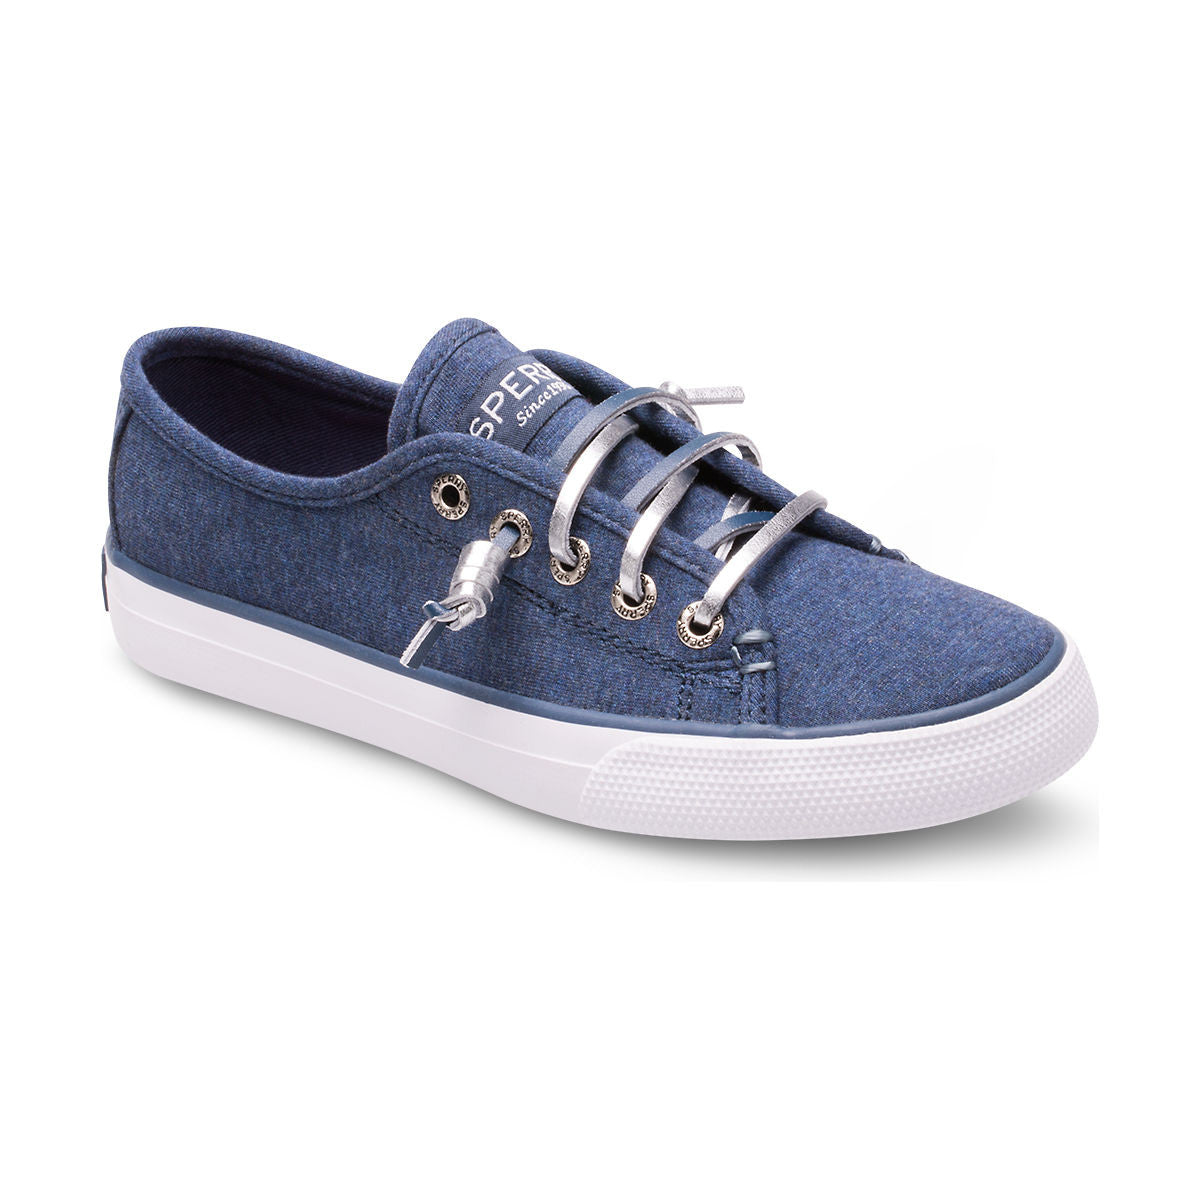 Sperry Navy Seacoast Sneaker